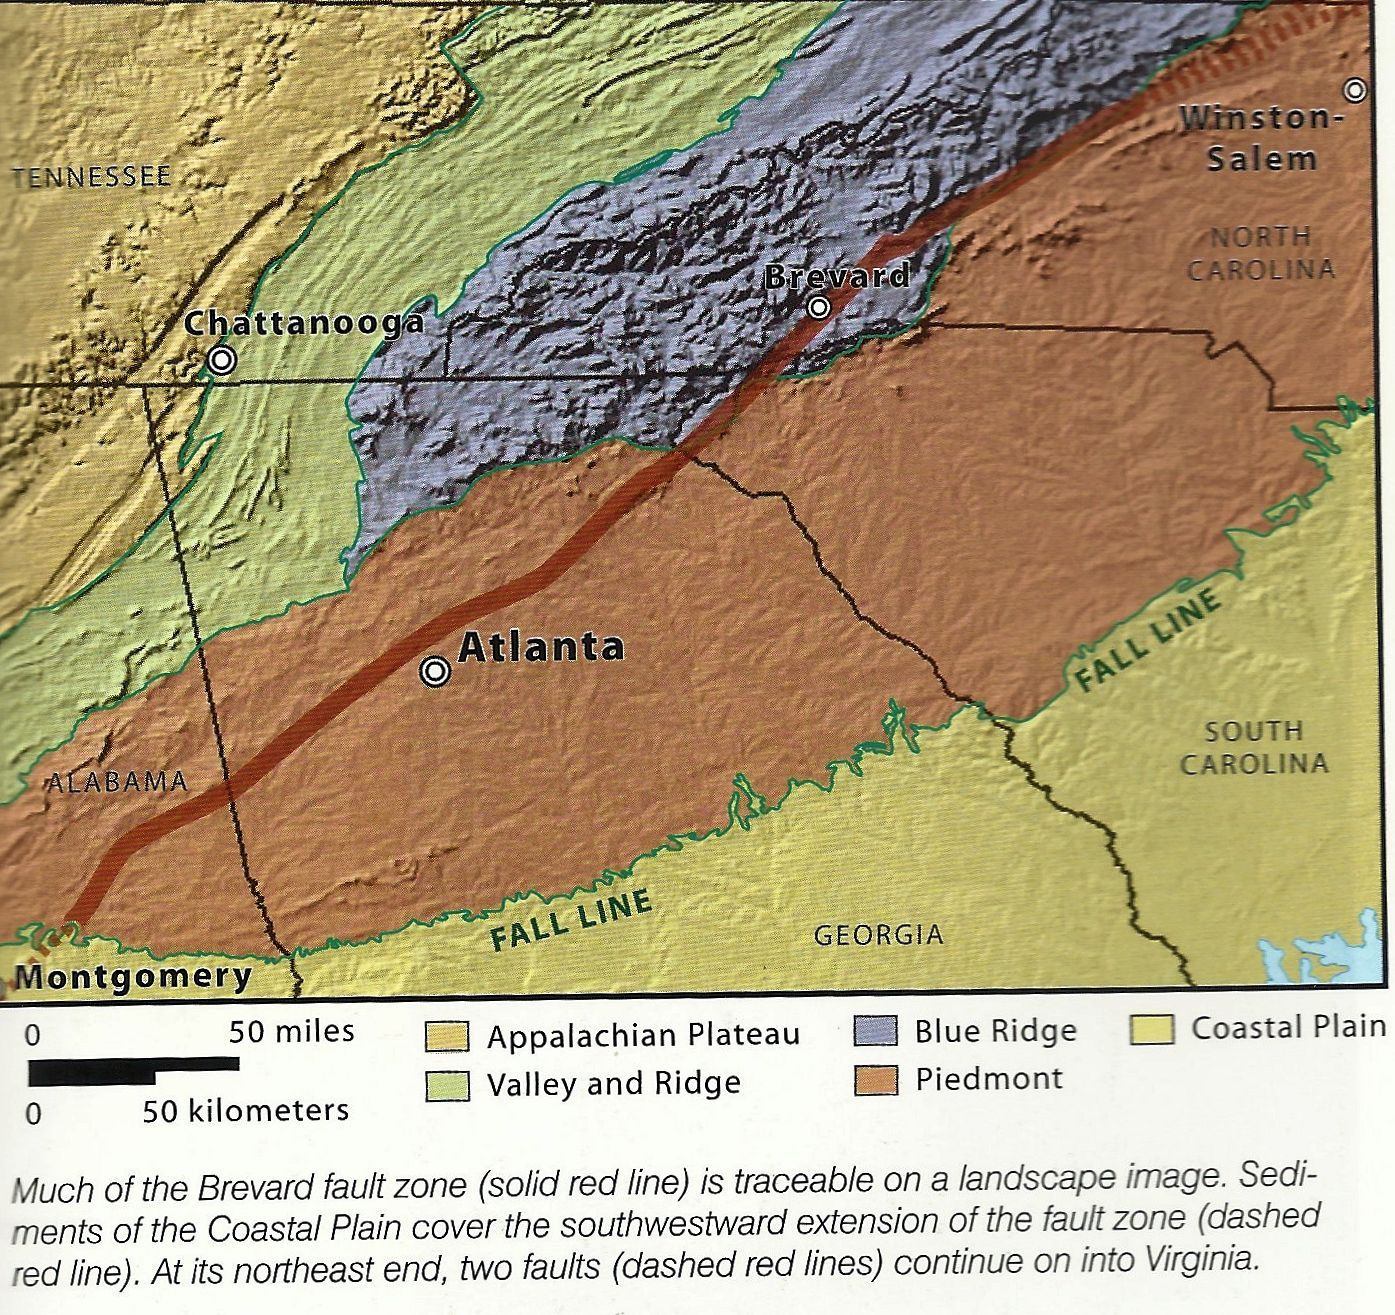 Running SWNE across AL, GA, & N.C., the Brevard Fault